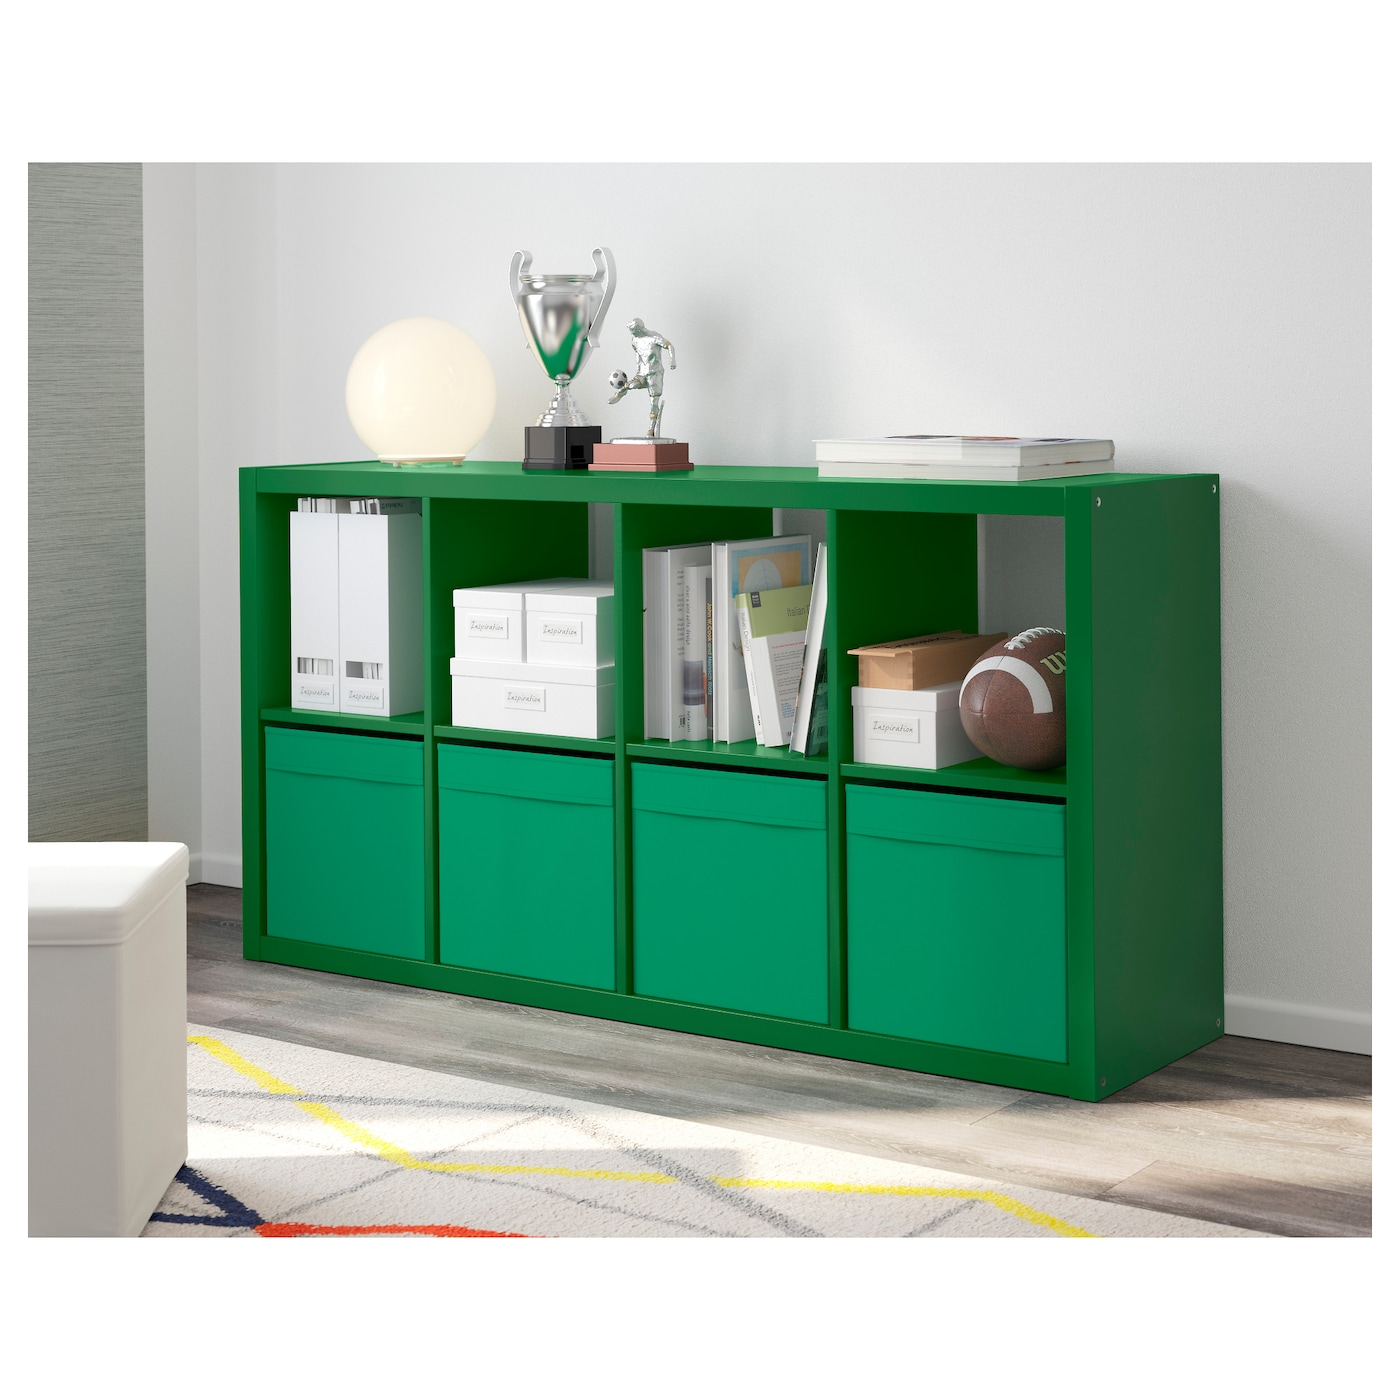 dr na rangement tissu vert 33x38x33 cm ikea. Black Bedroom Furniture Sets. Home Design Ideas